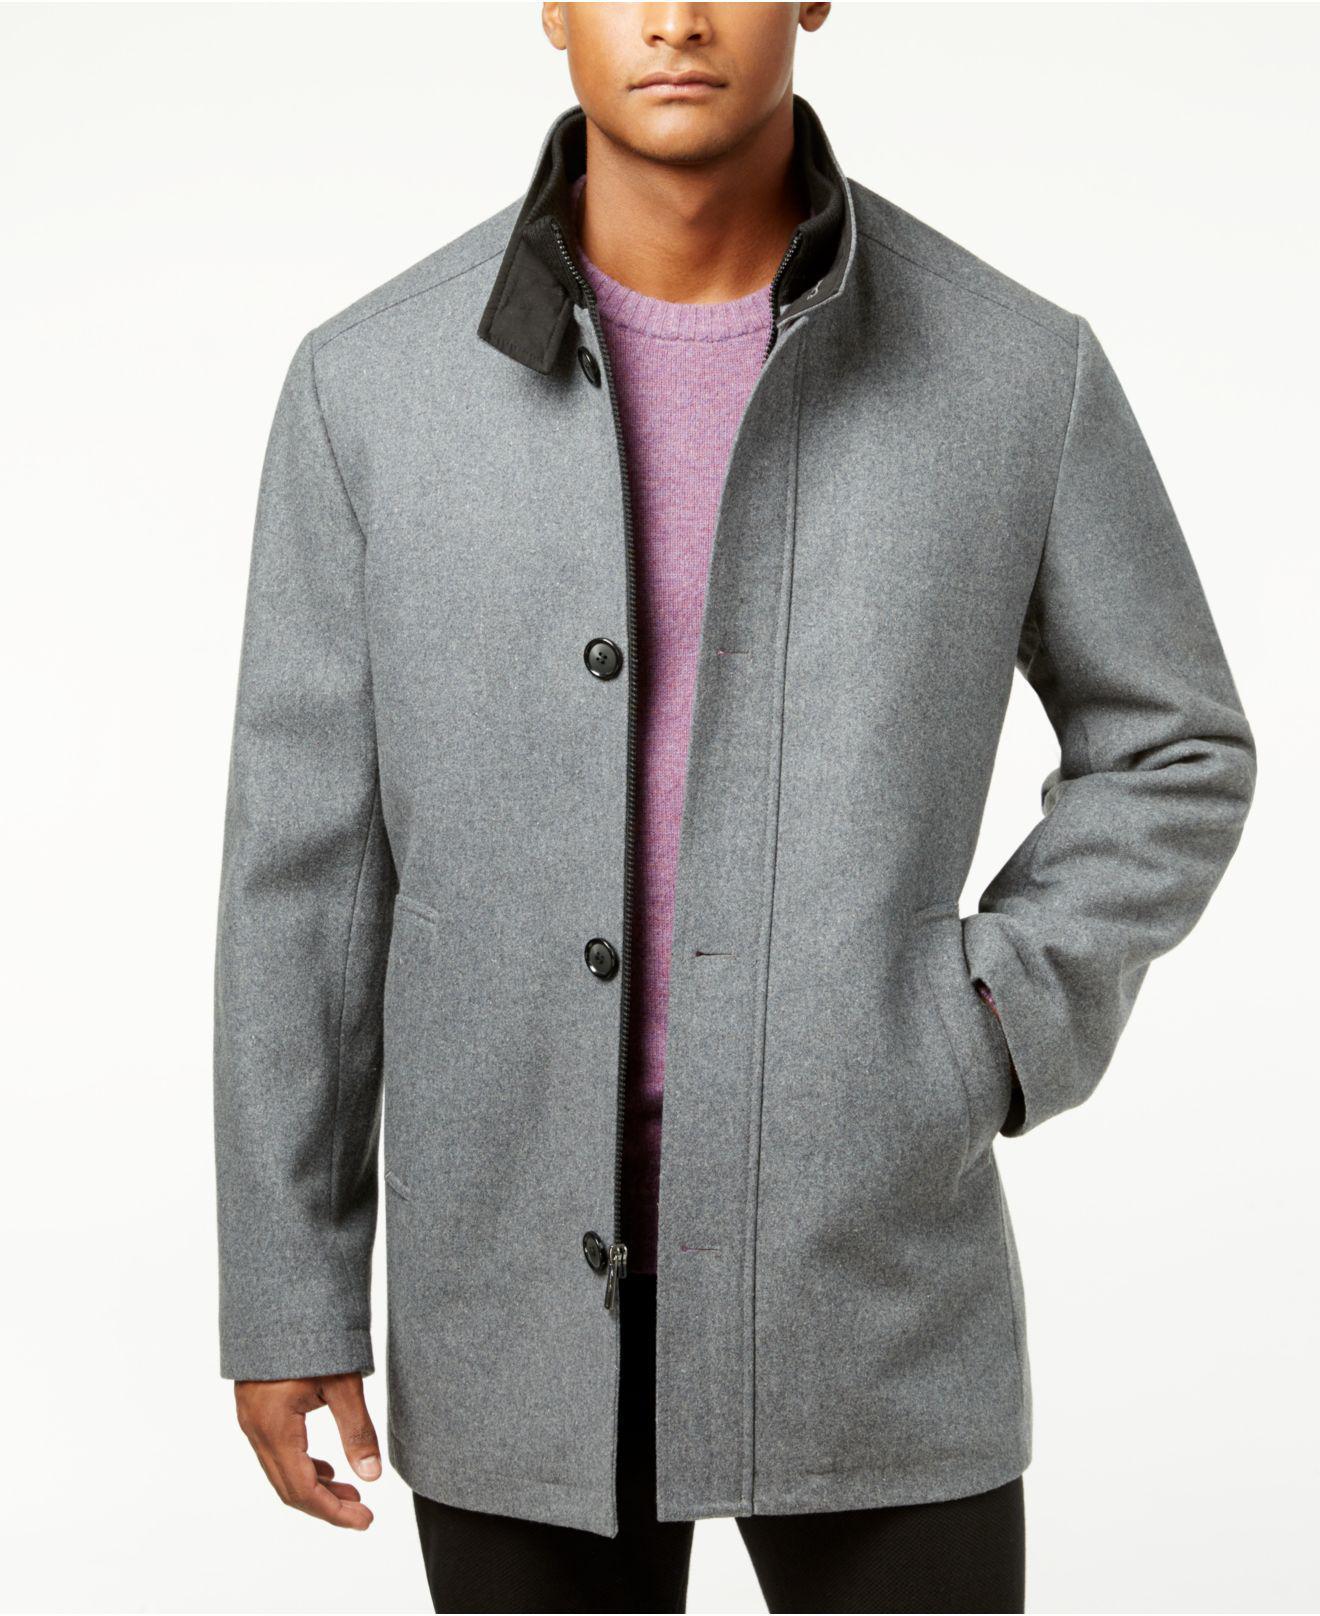 b402a3c06885 Kenneth Cole Single-breasted Charcoal Solid Car Coat in Gray for Men ...